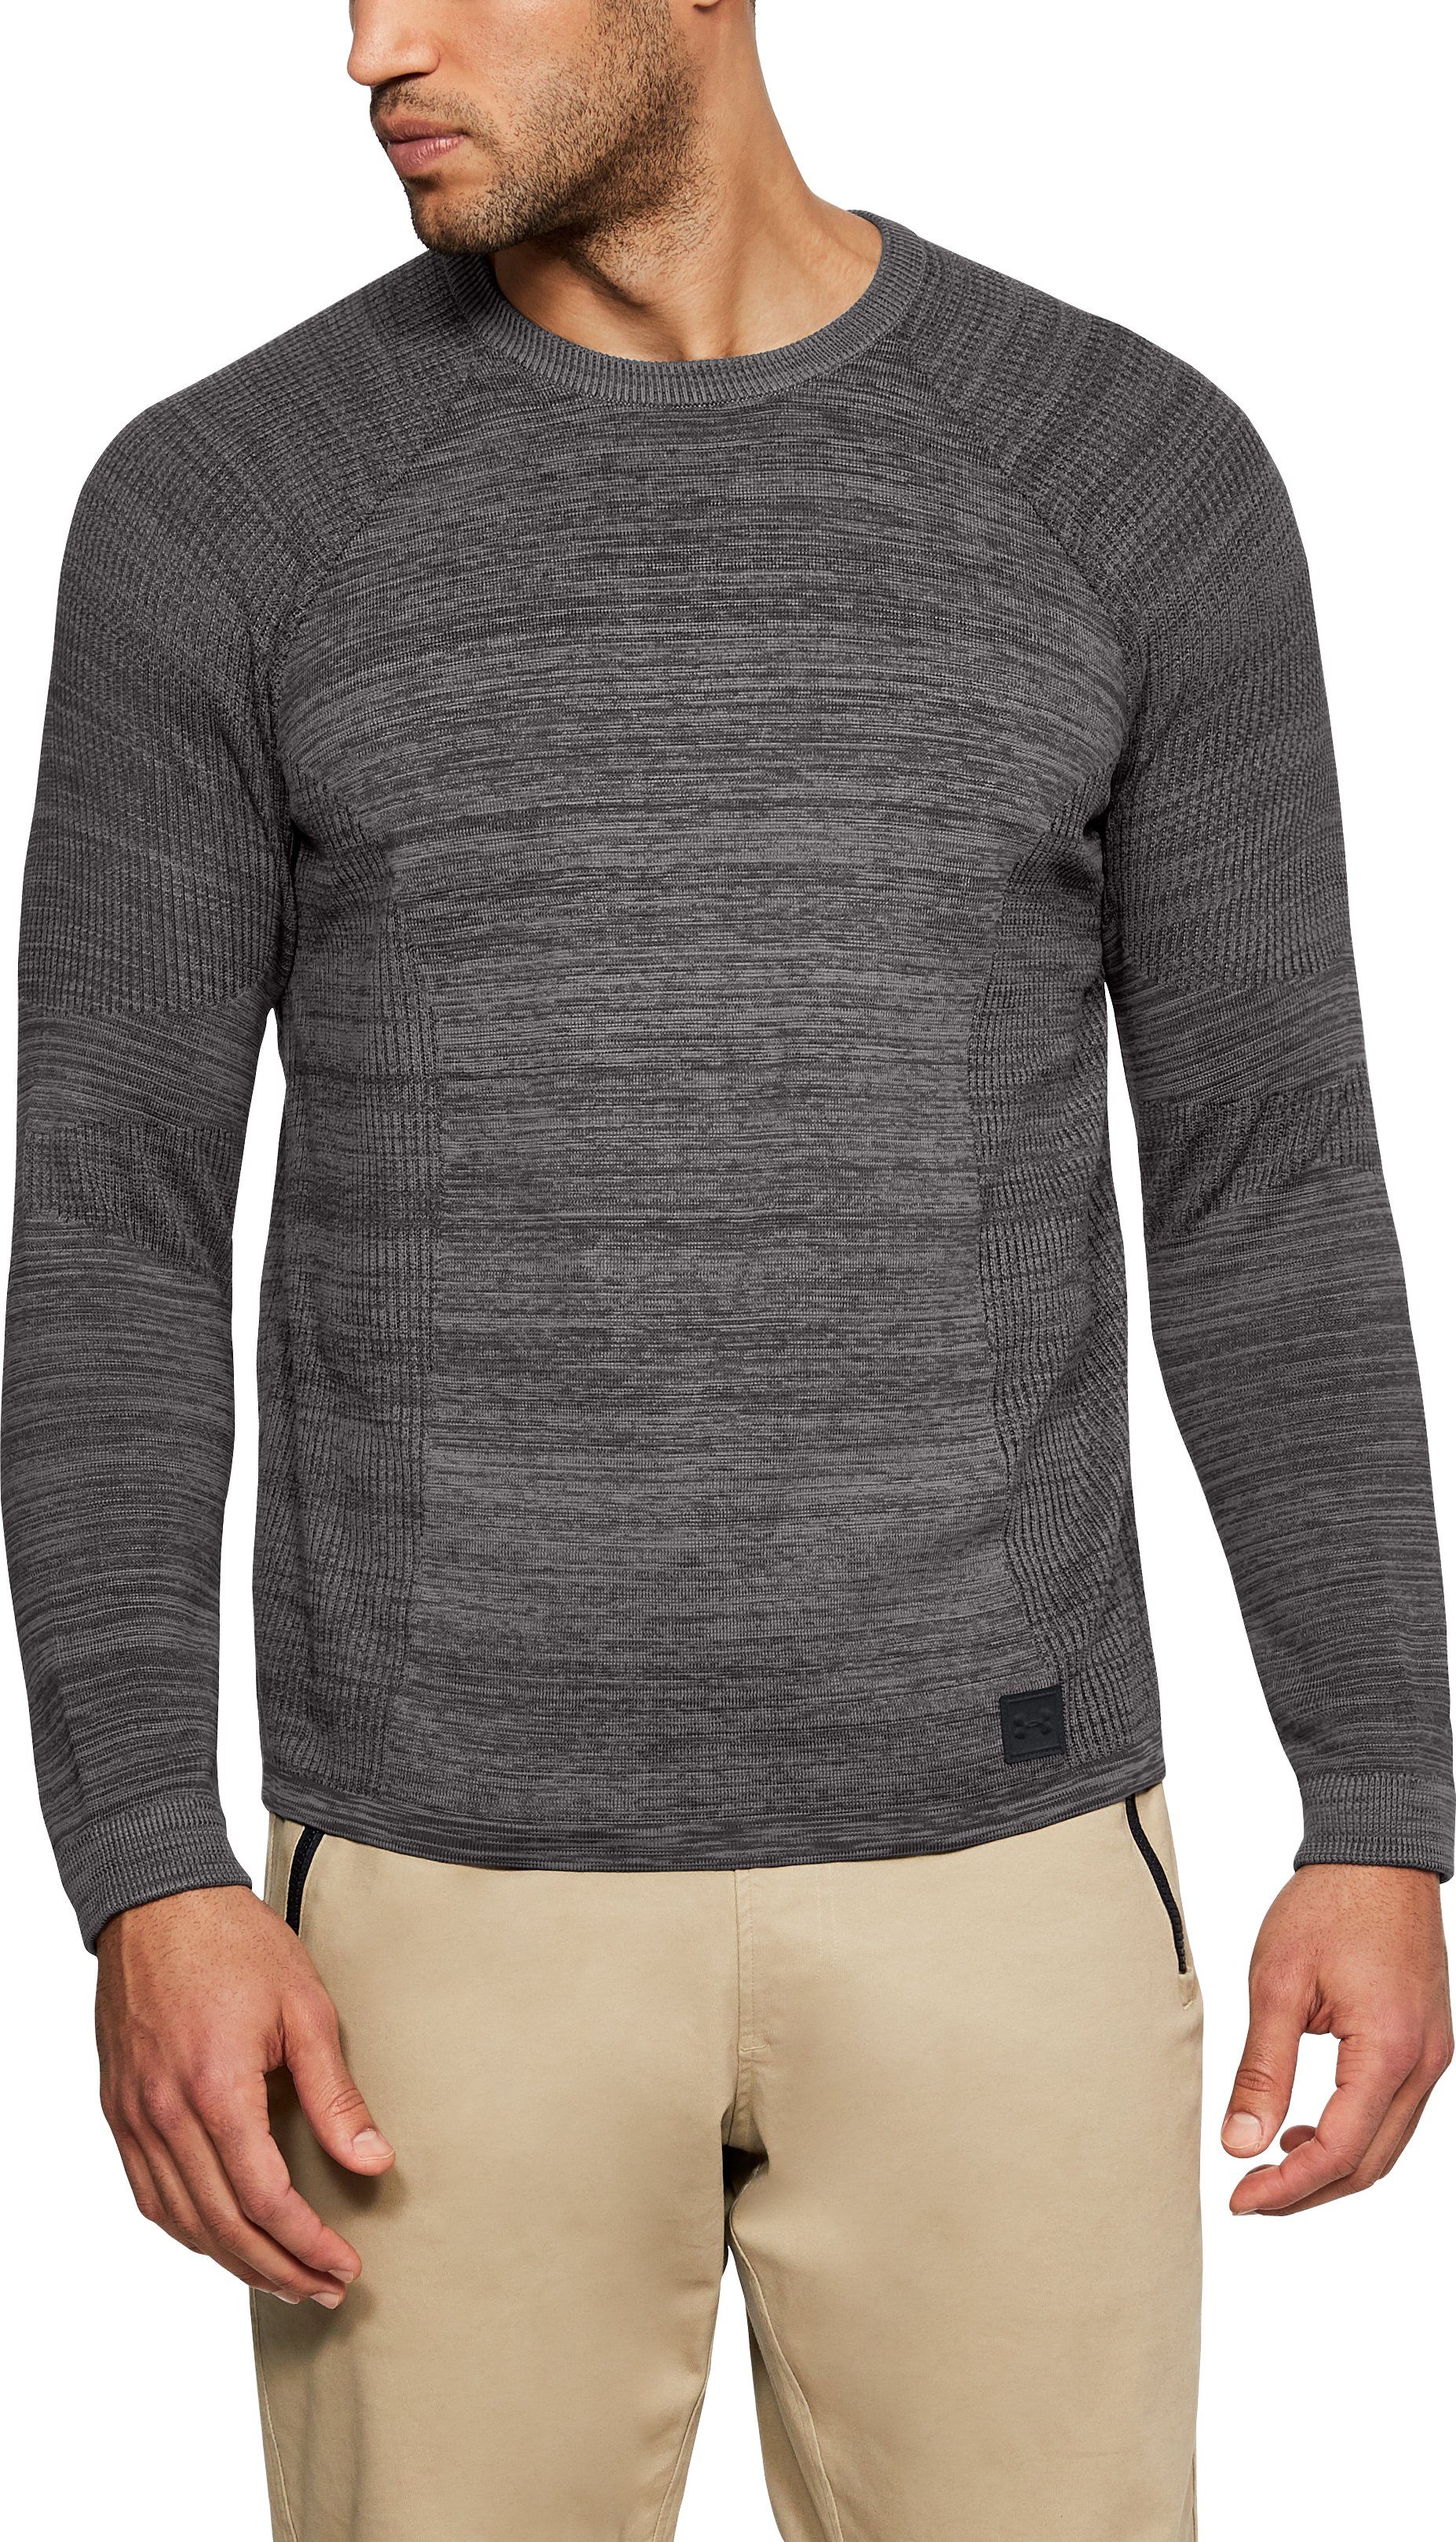 medium sweaters Men's UA Sportstyle Sweater This sweater has amazing quality and I love the design....Amazing quality but not fitted